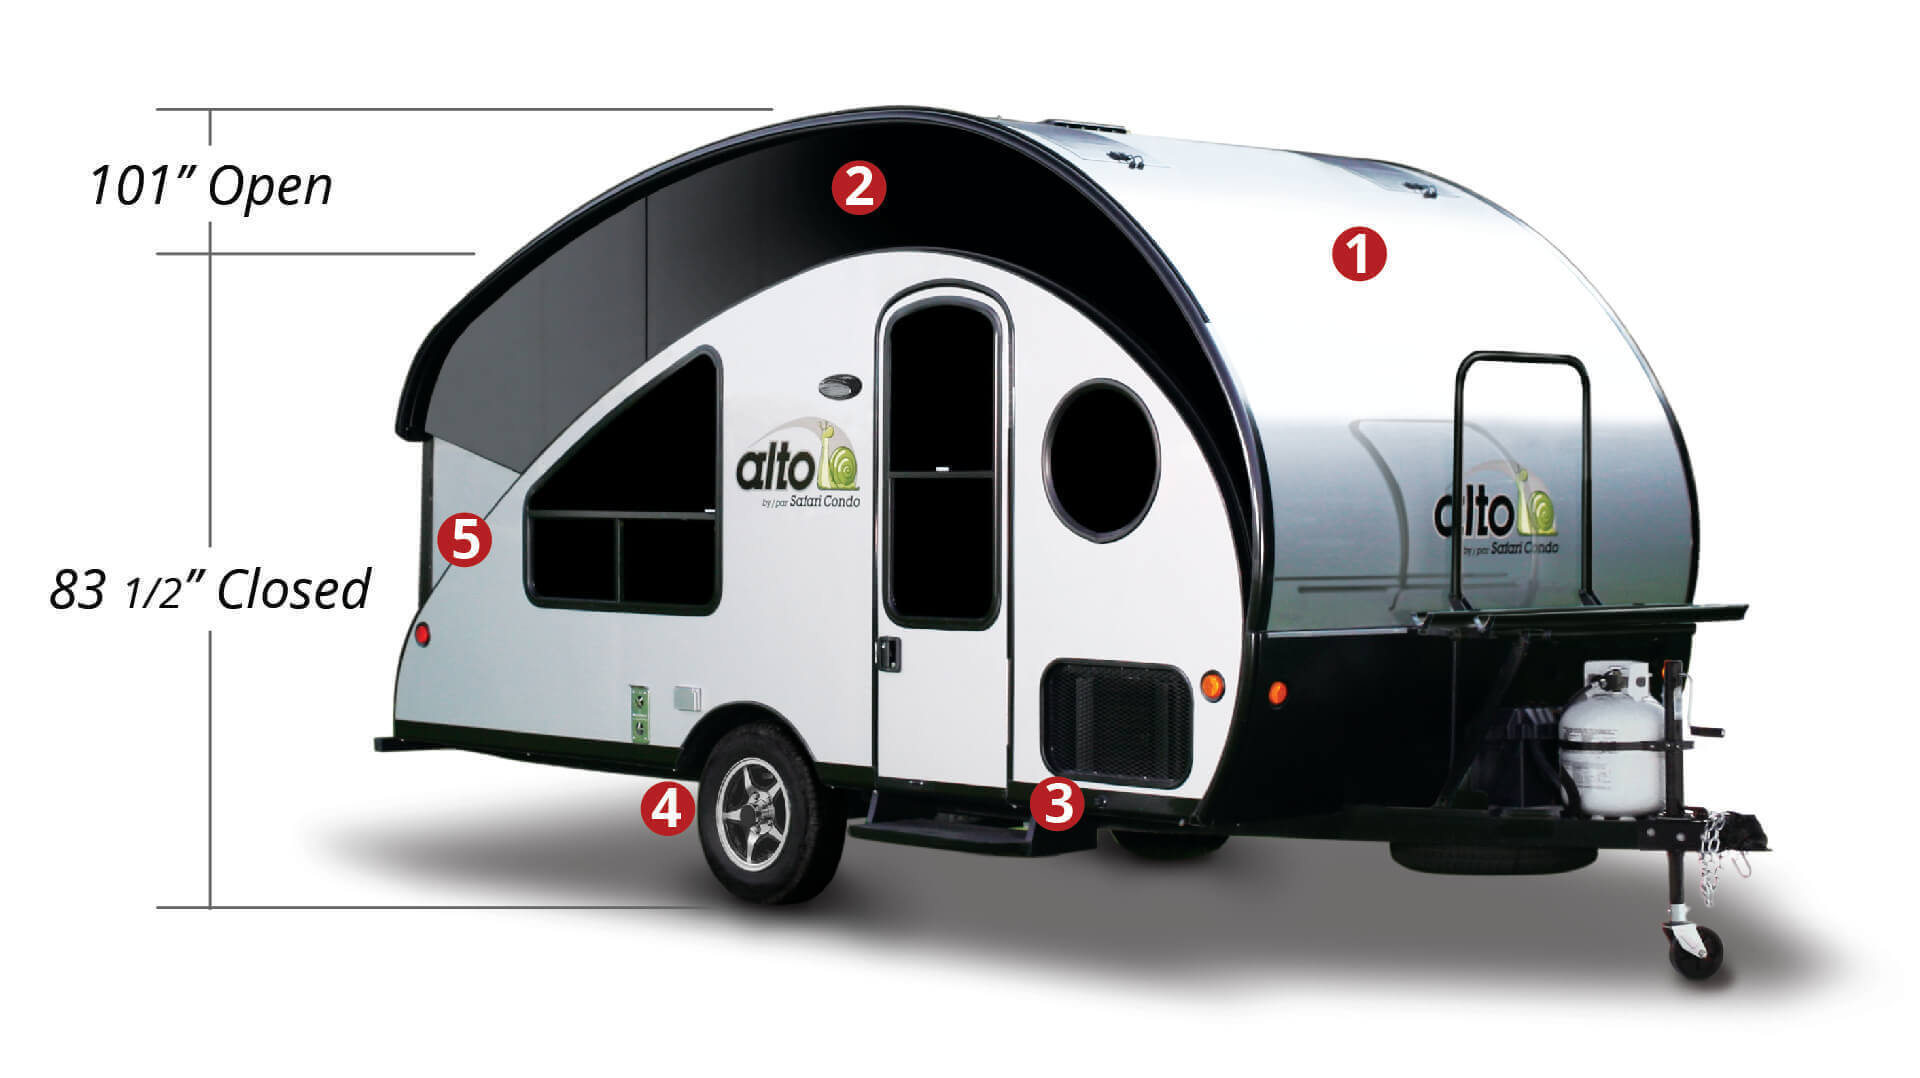 Alto Lightweight Travel Trailers Safari Condo